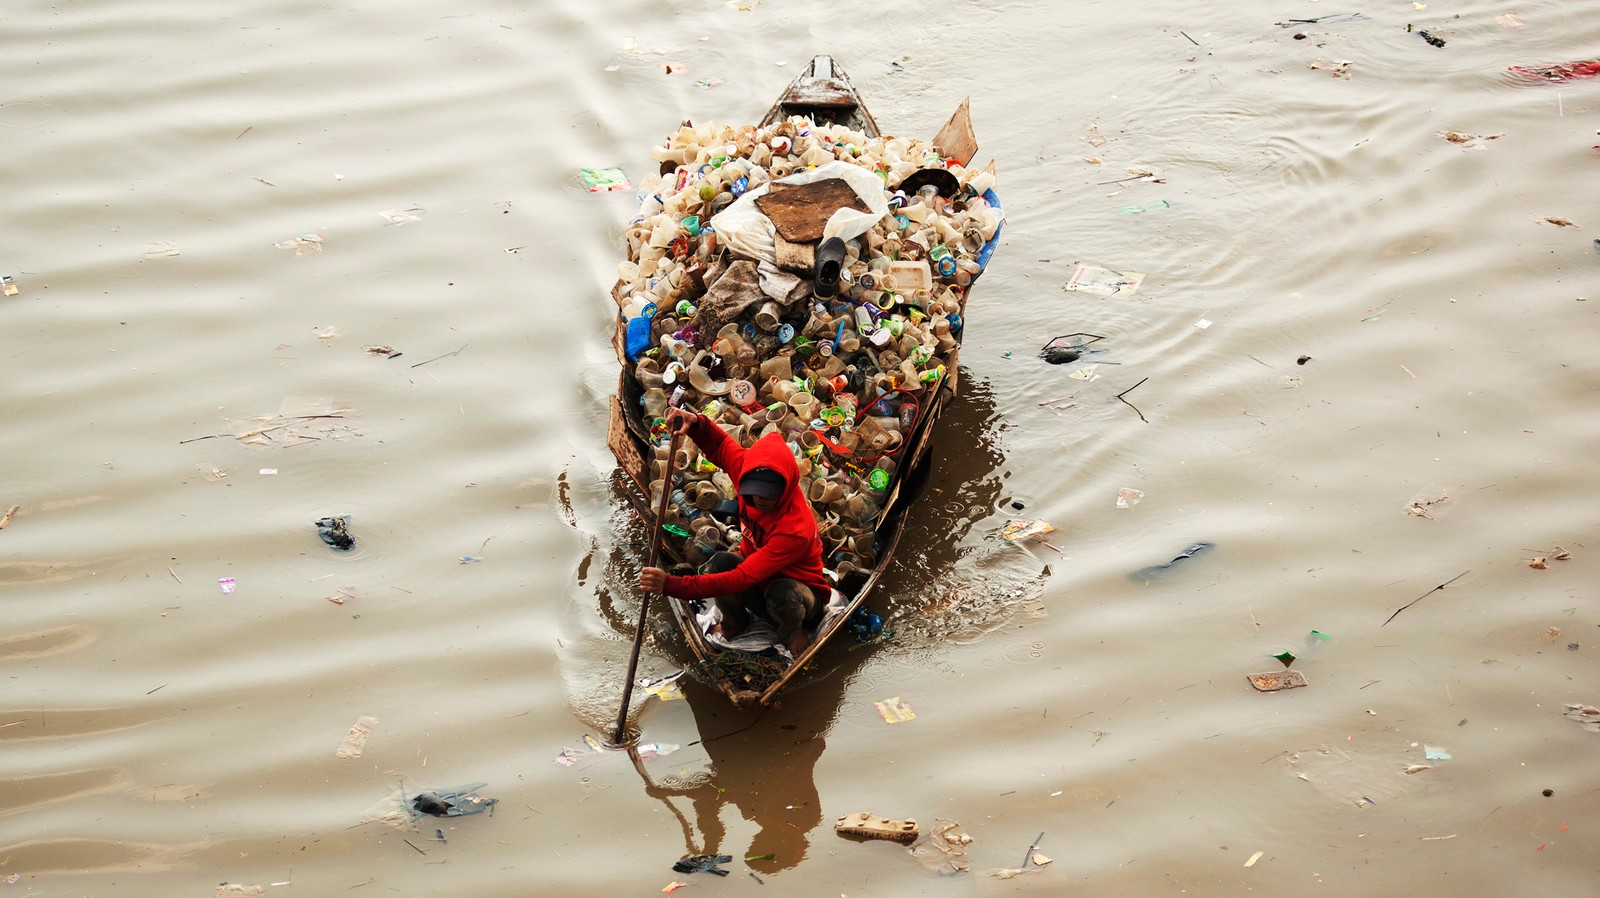 I Photographed the 'World's Dirtiest River' For Eight Years. Here's What I Saw.